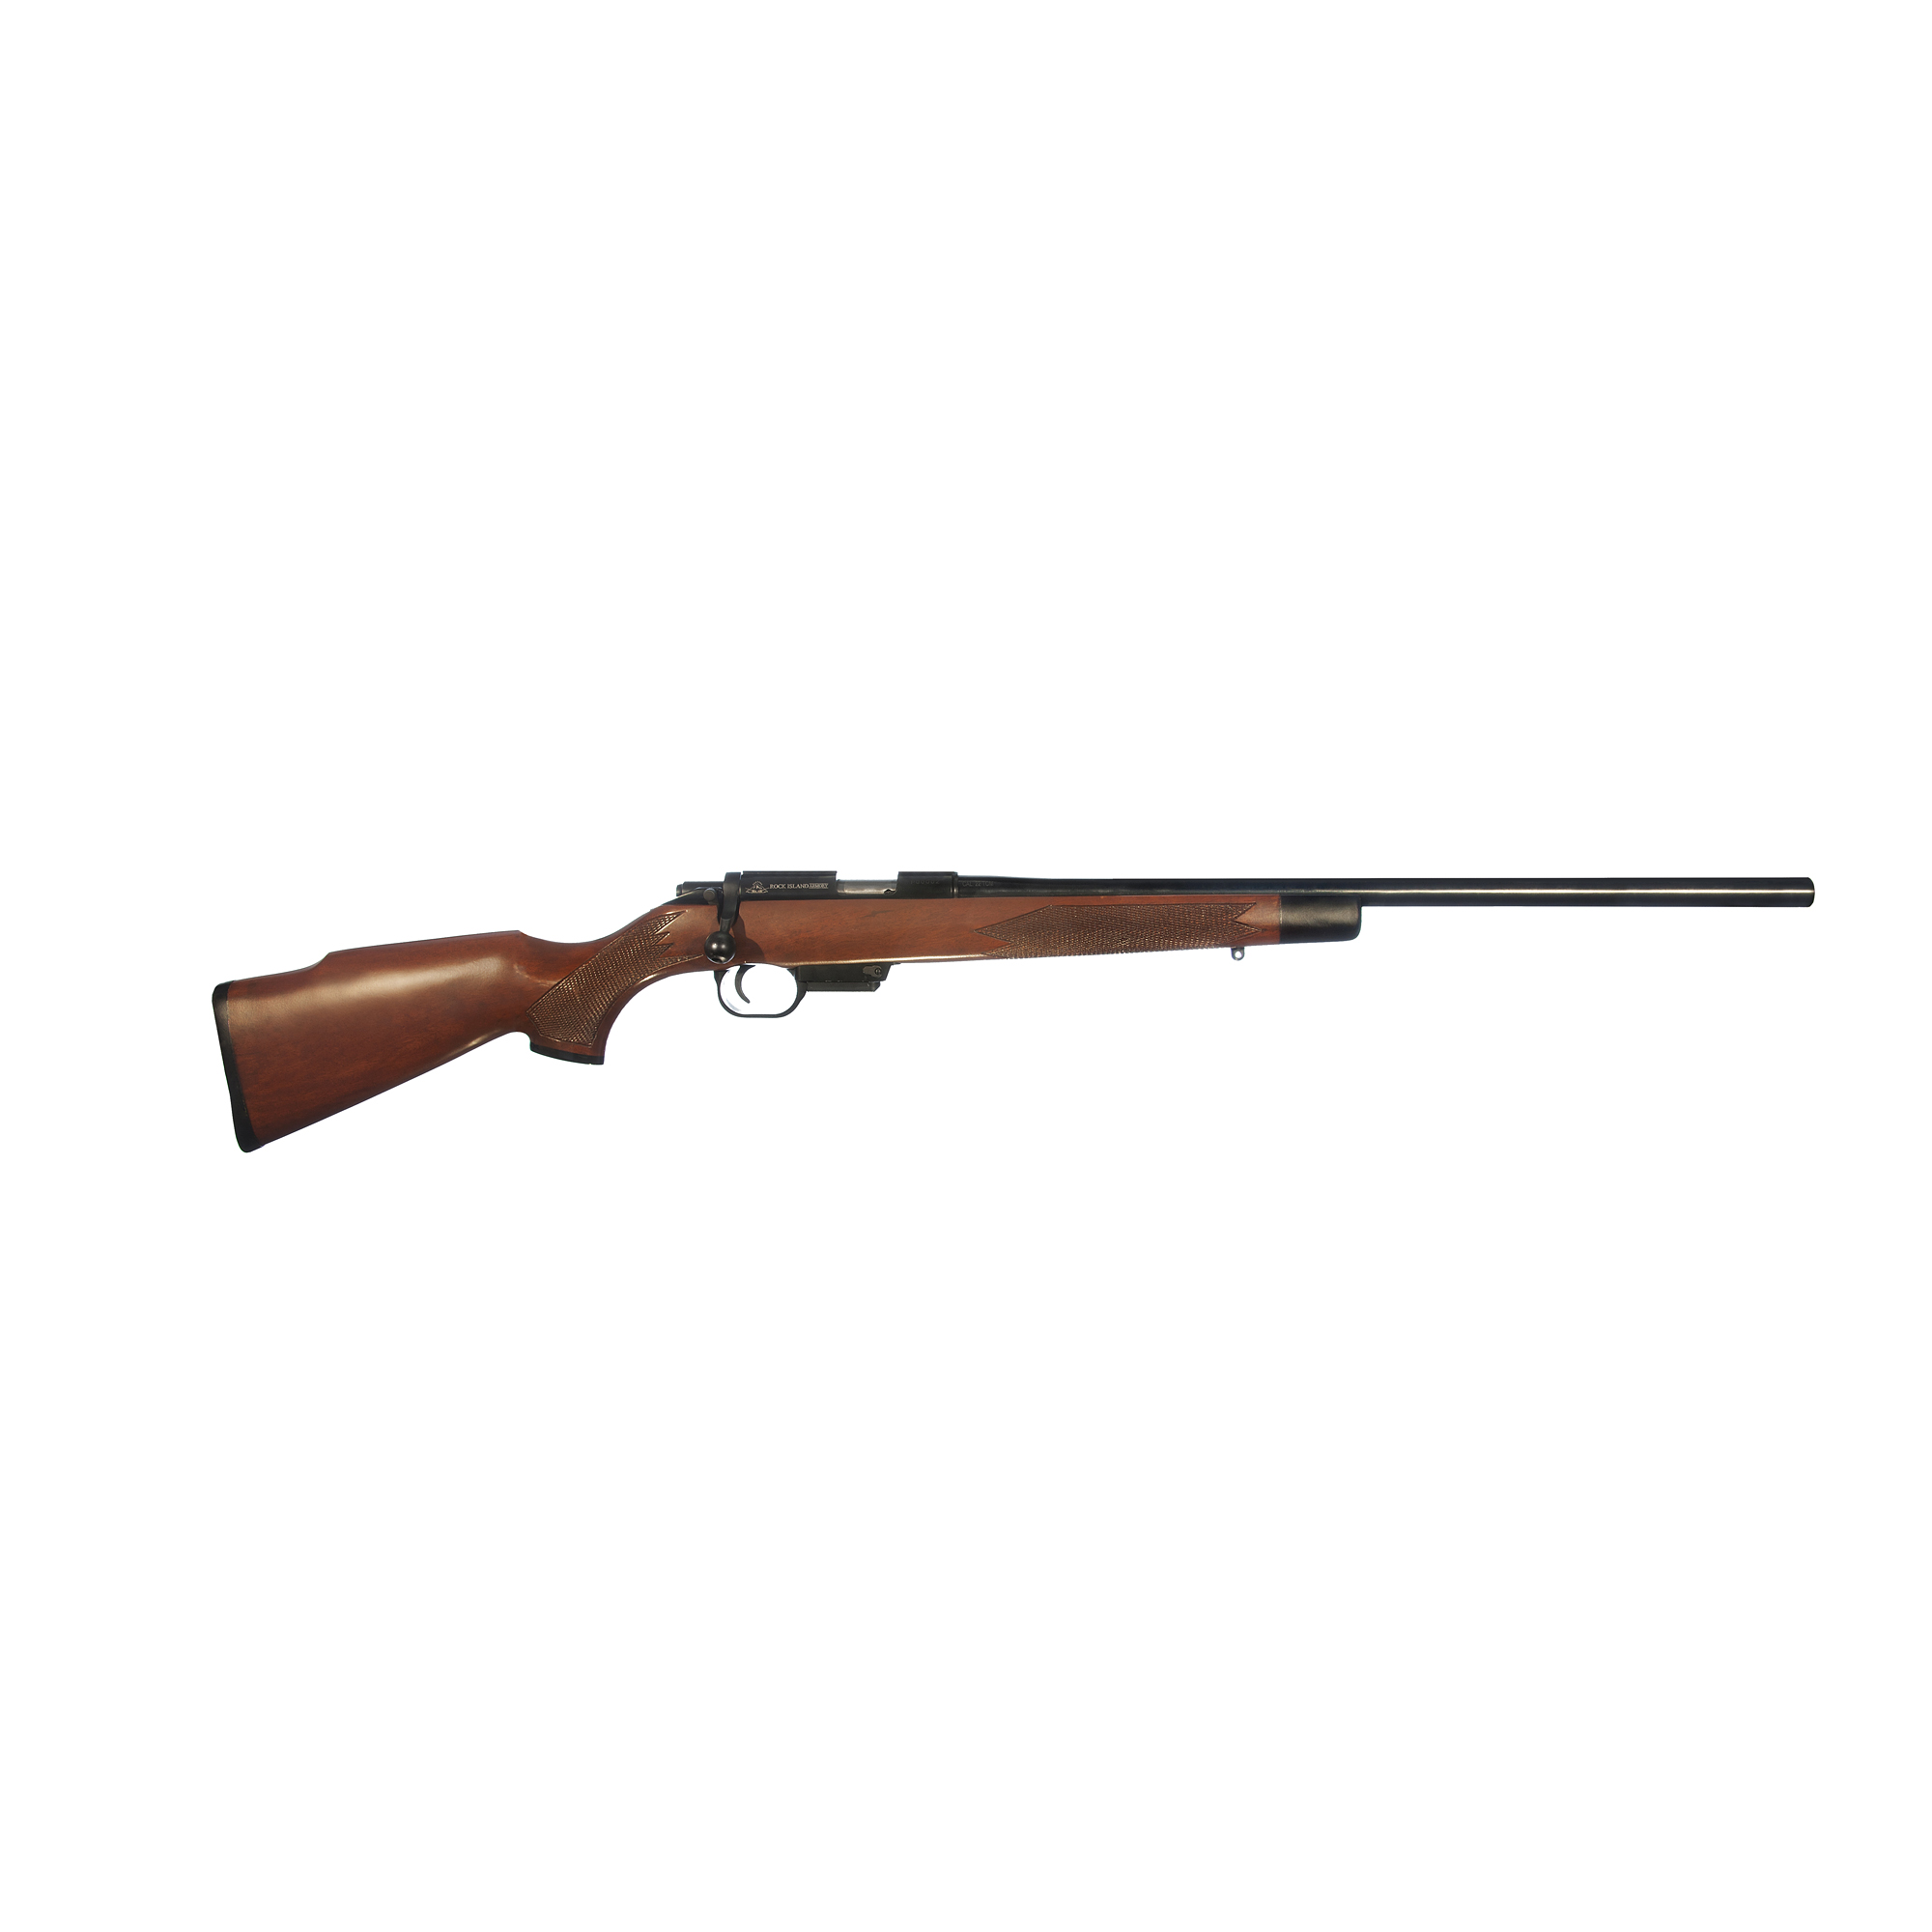 """Rock Island Armory takes the success and popularity of the 22 TCM cartridge and combines it with the M22 TCM bolt action rifle. This rifle is a small game hunter's dream"""" capable of delivering a 40 grain projectile over 2""""800 feet per second out of a 22.75"""" barrel."""